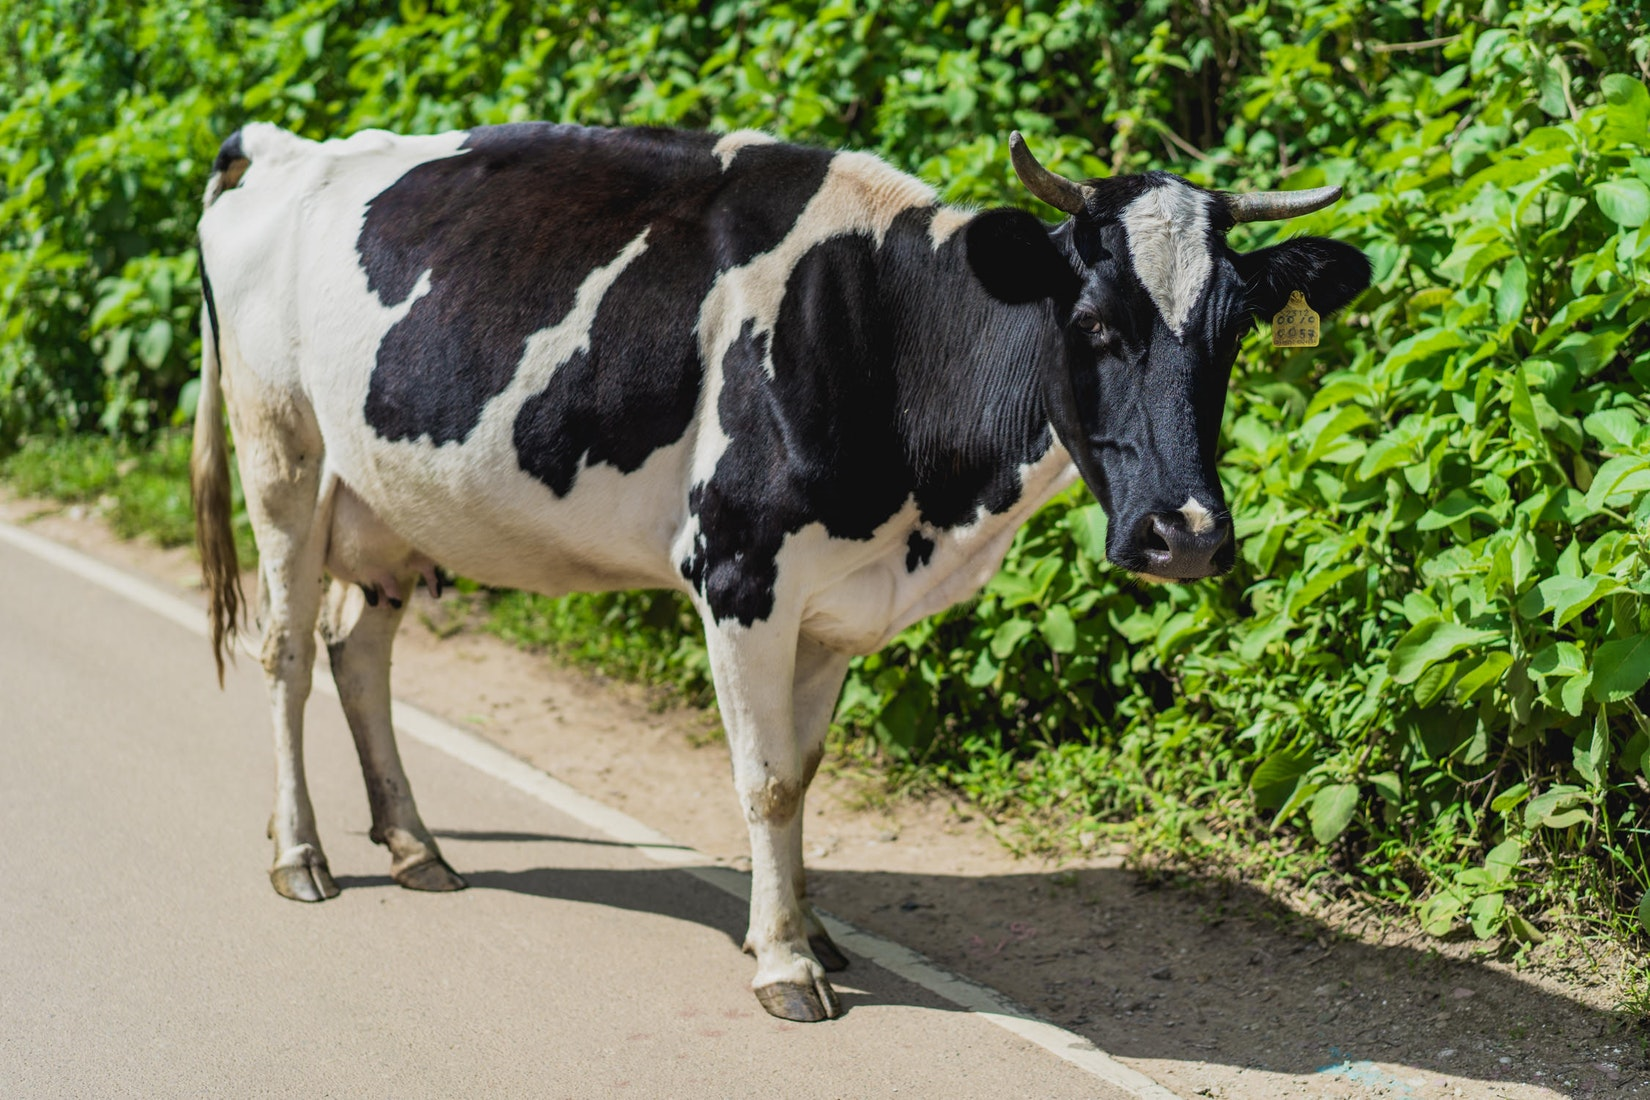 A cow in the road